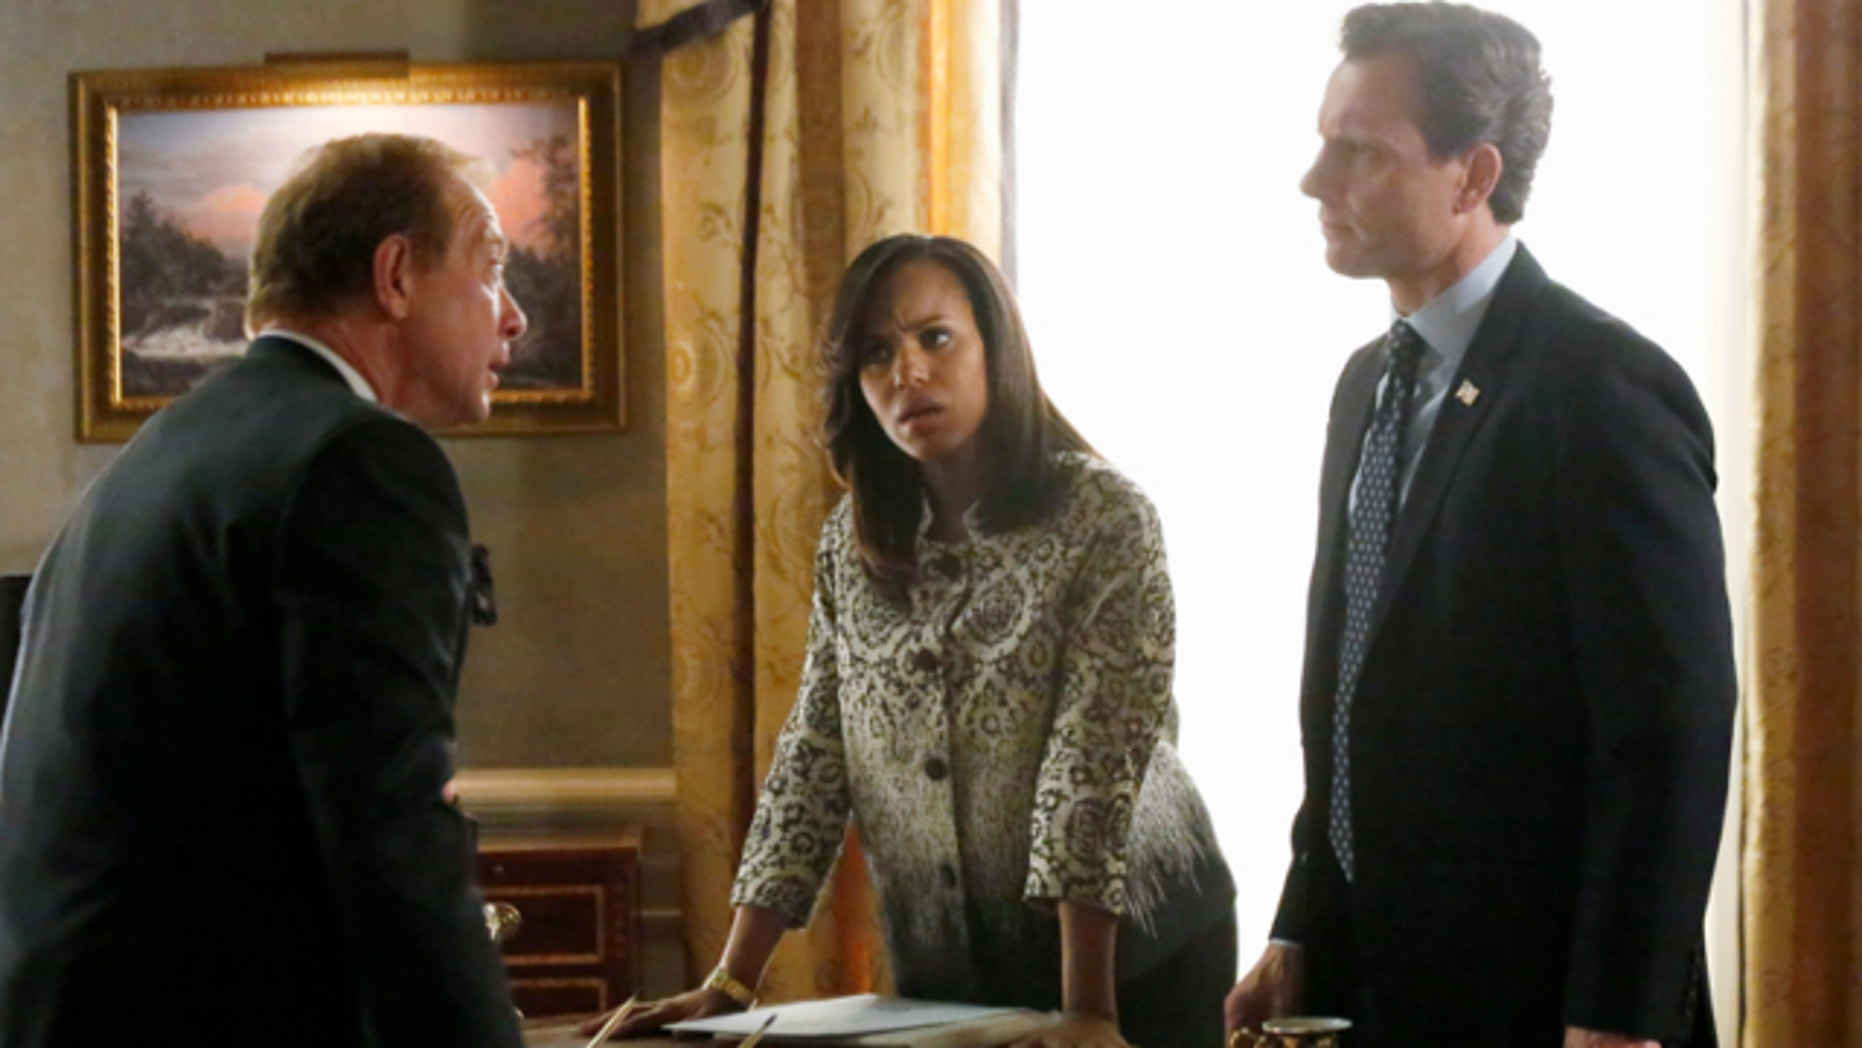 """This image released by ABC shows actors, from left, Jeff Perry, Kerry Washington and Tony Goldwyn in a scene from """"Scandal."""" The series airs Thursdays at 10 p.m. EST on ABC."""